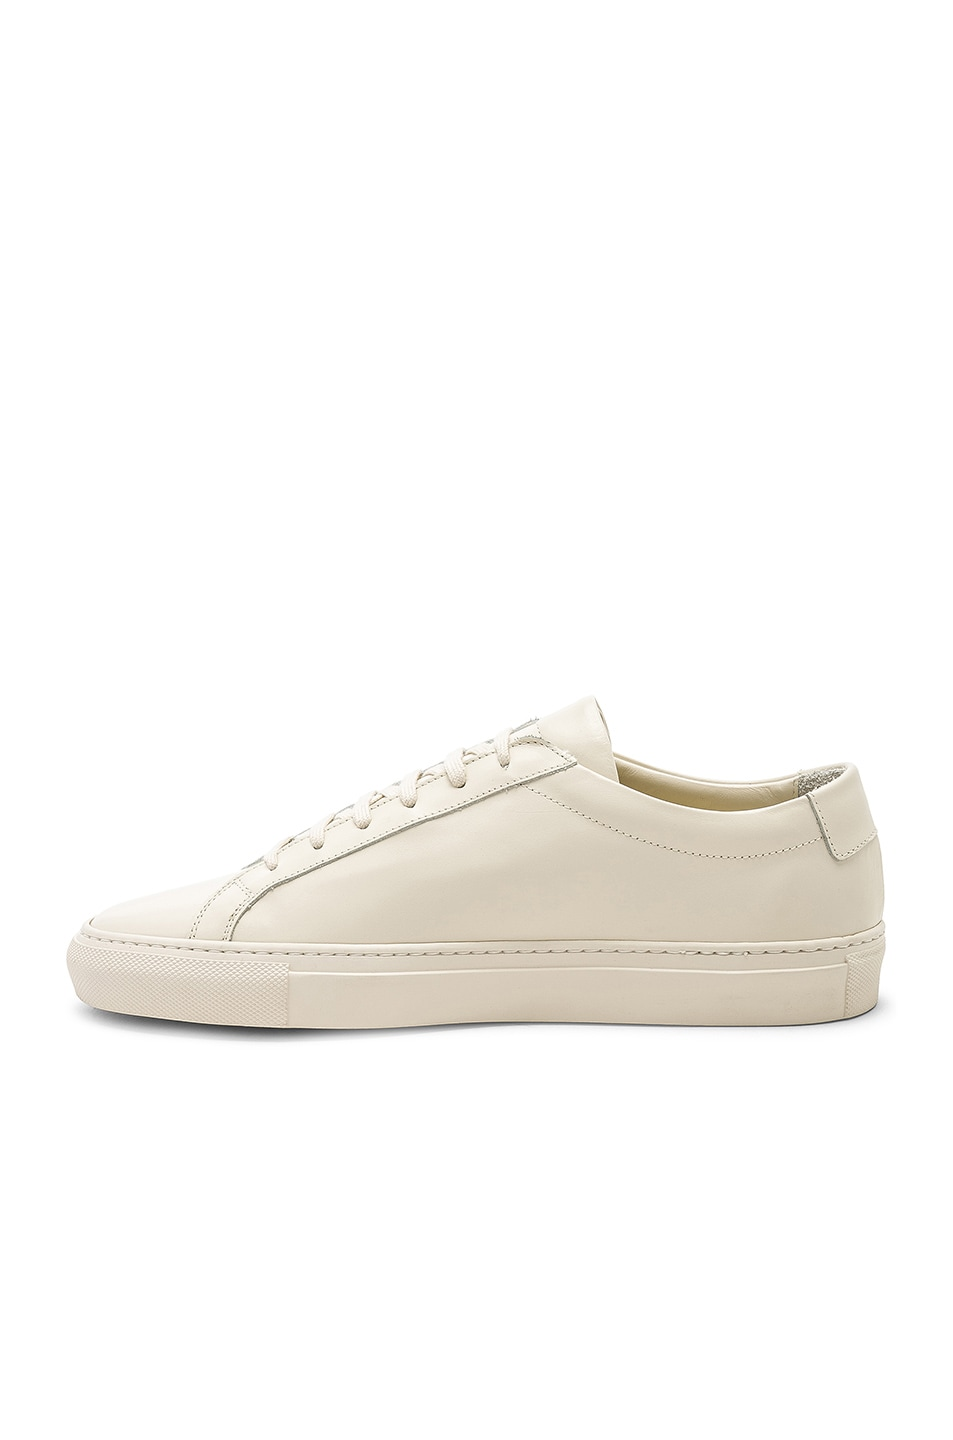 Image 5 of Common Projects Original Leather Achilles Low in Warm White